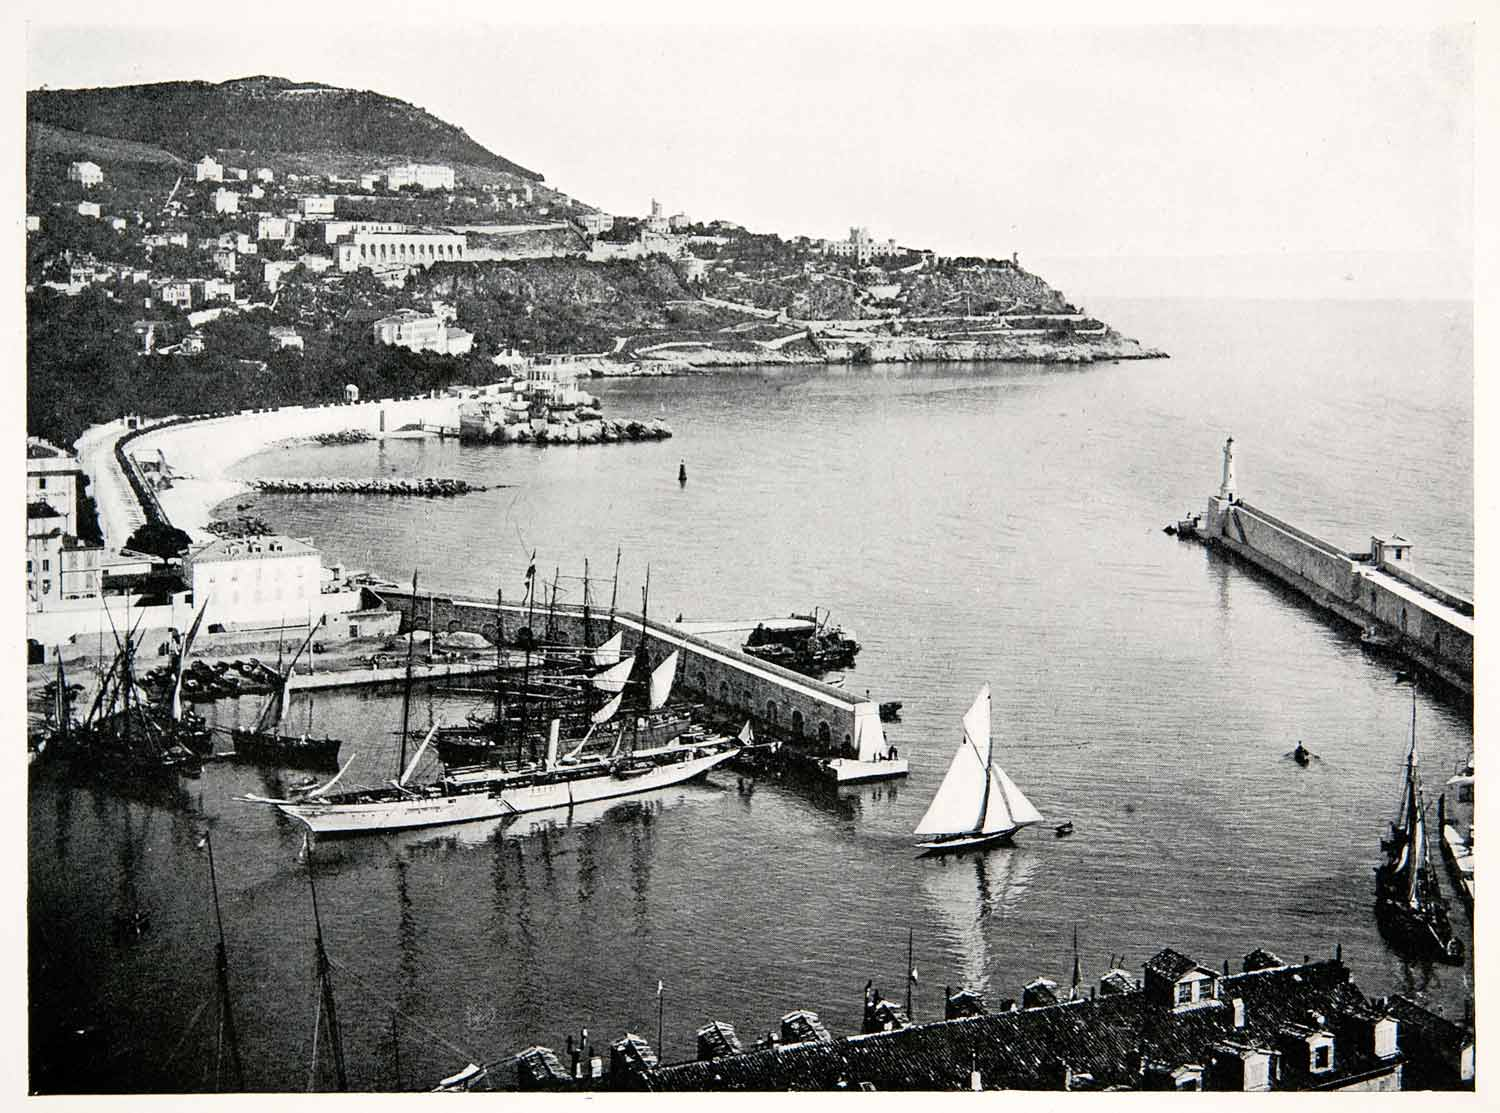 1902 Print Nice Port Lympia Harbor French Riviera Cote Dazure XGKB3